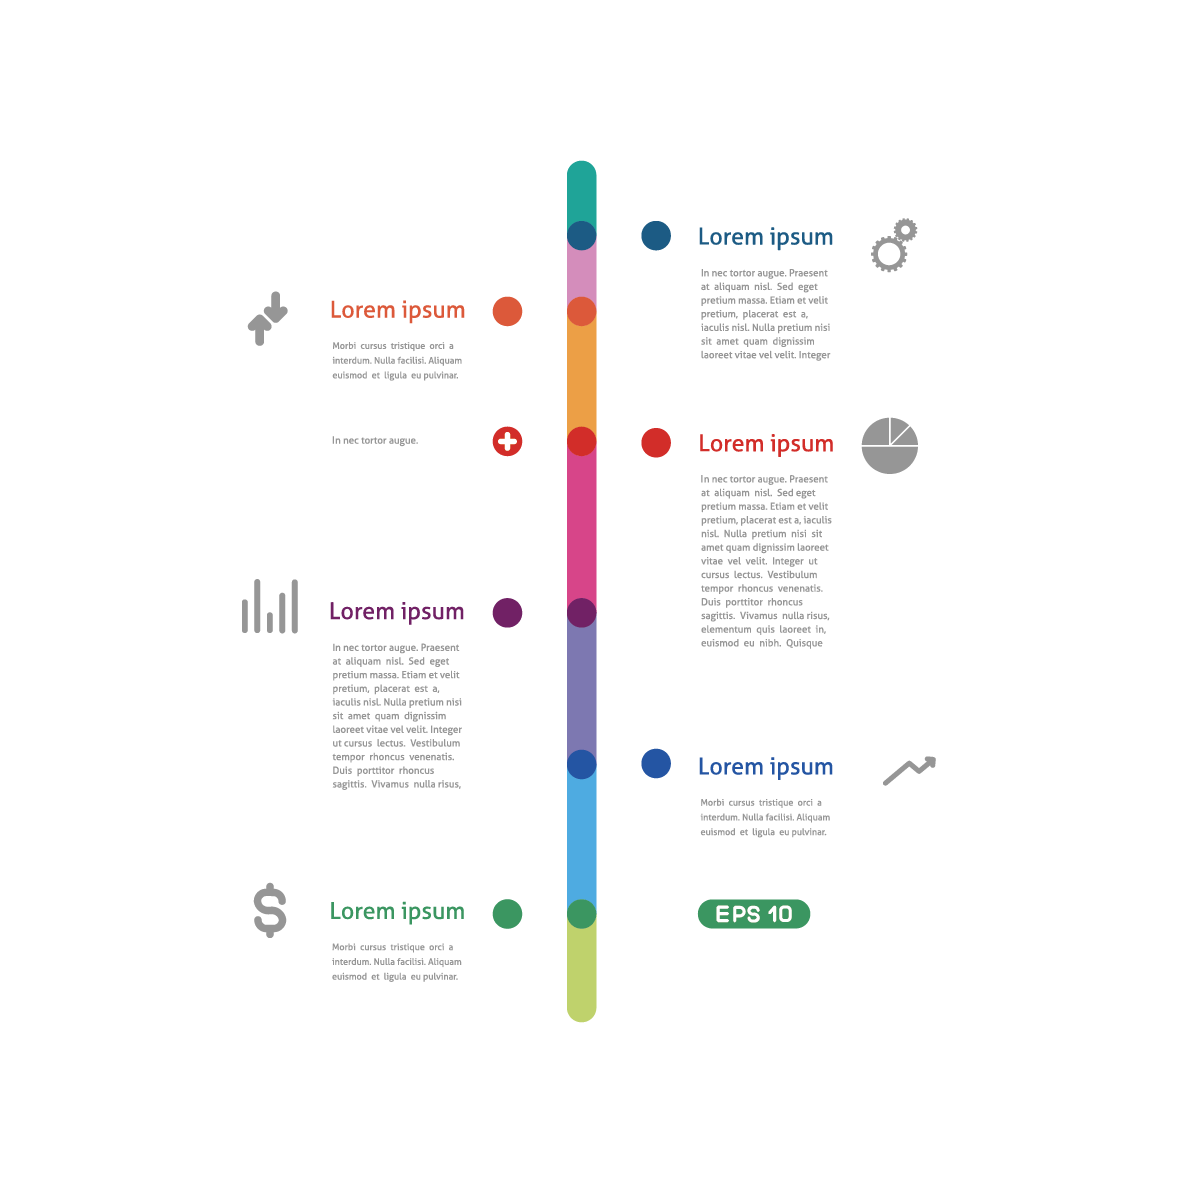 Timeline Infographic Template Graphic Design Vector Creative Ppt Infographic 1181 1181 Trans Timeline Design Timeline Infographic Design Timeline Infographic